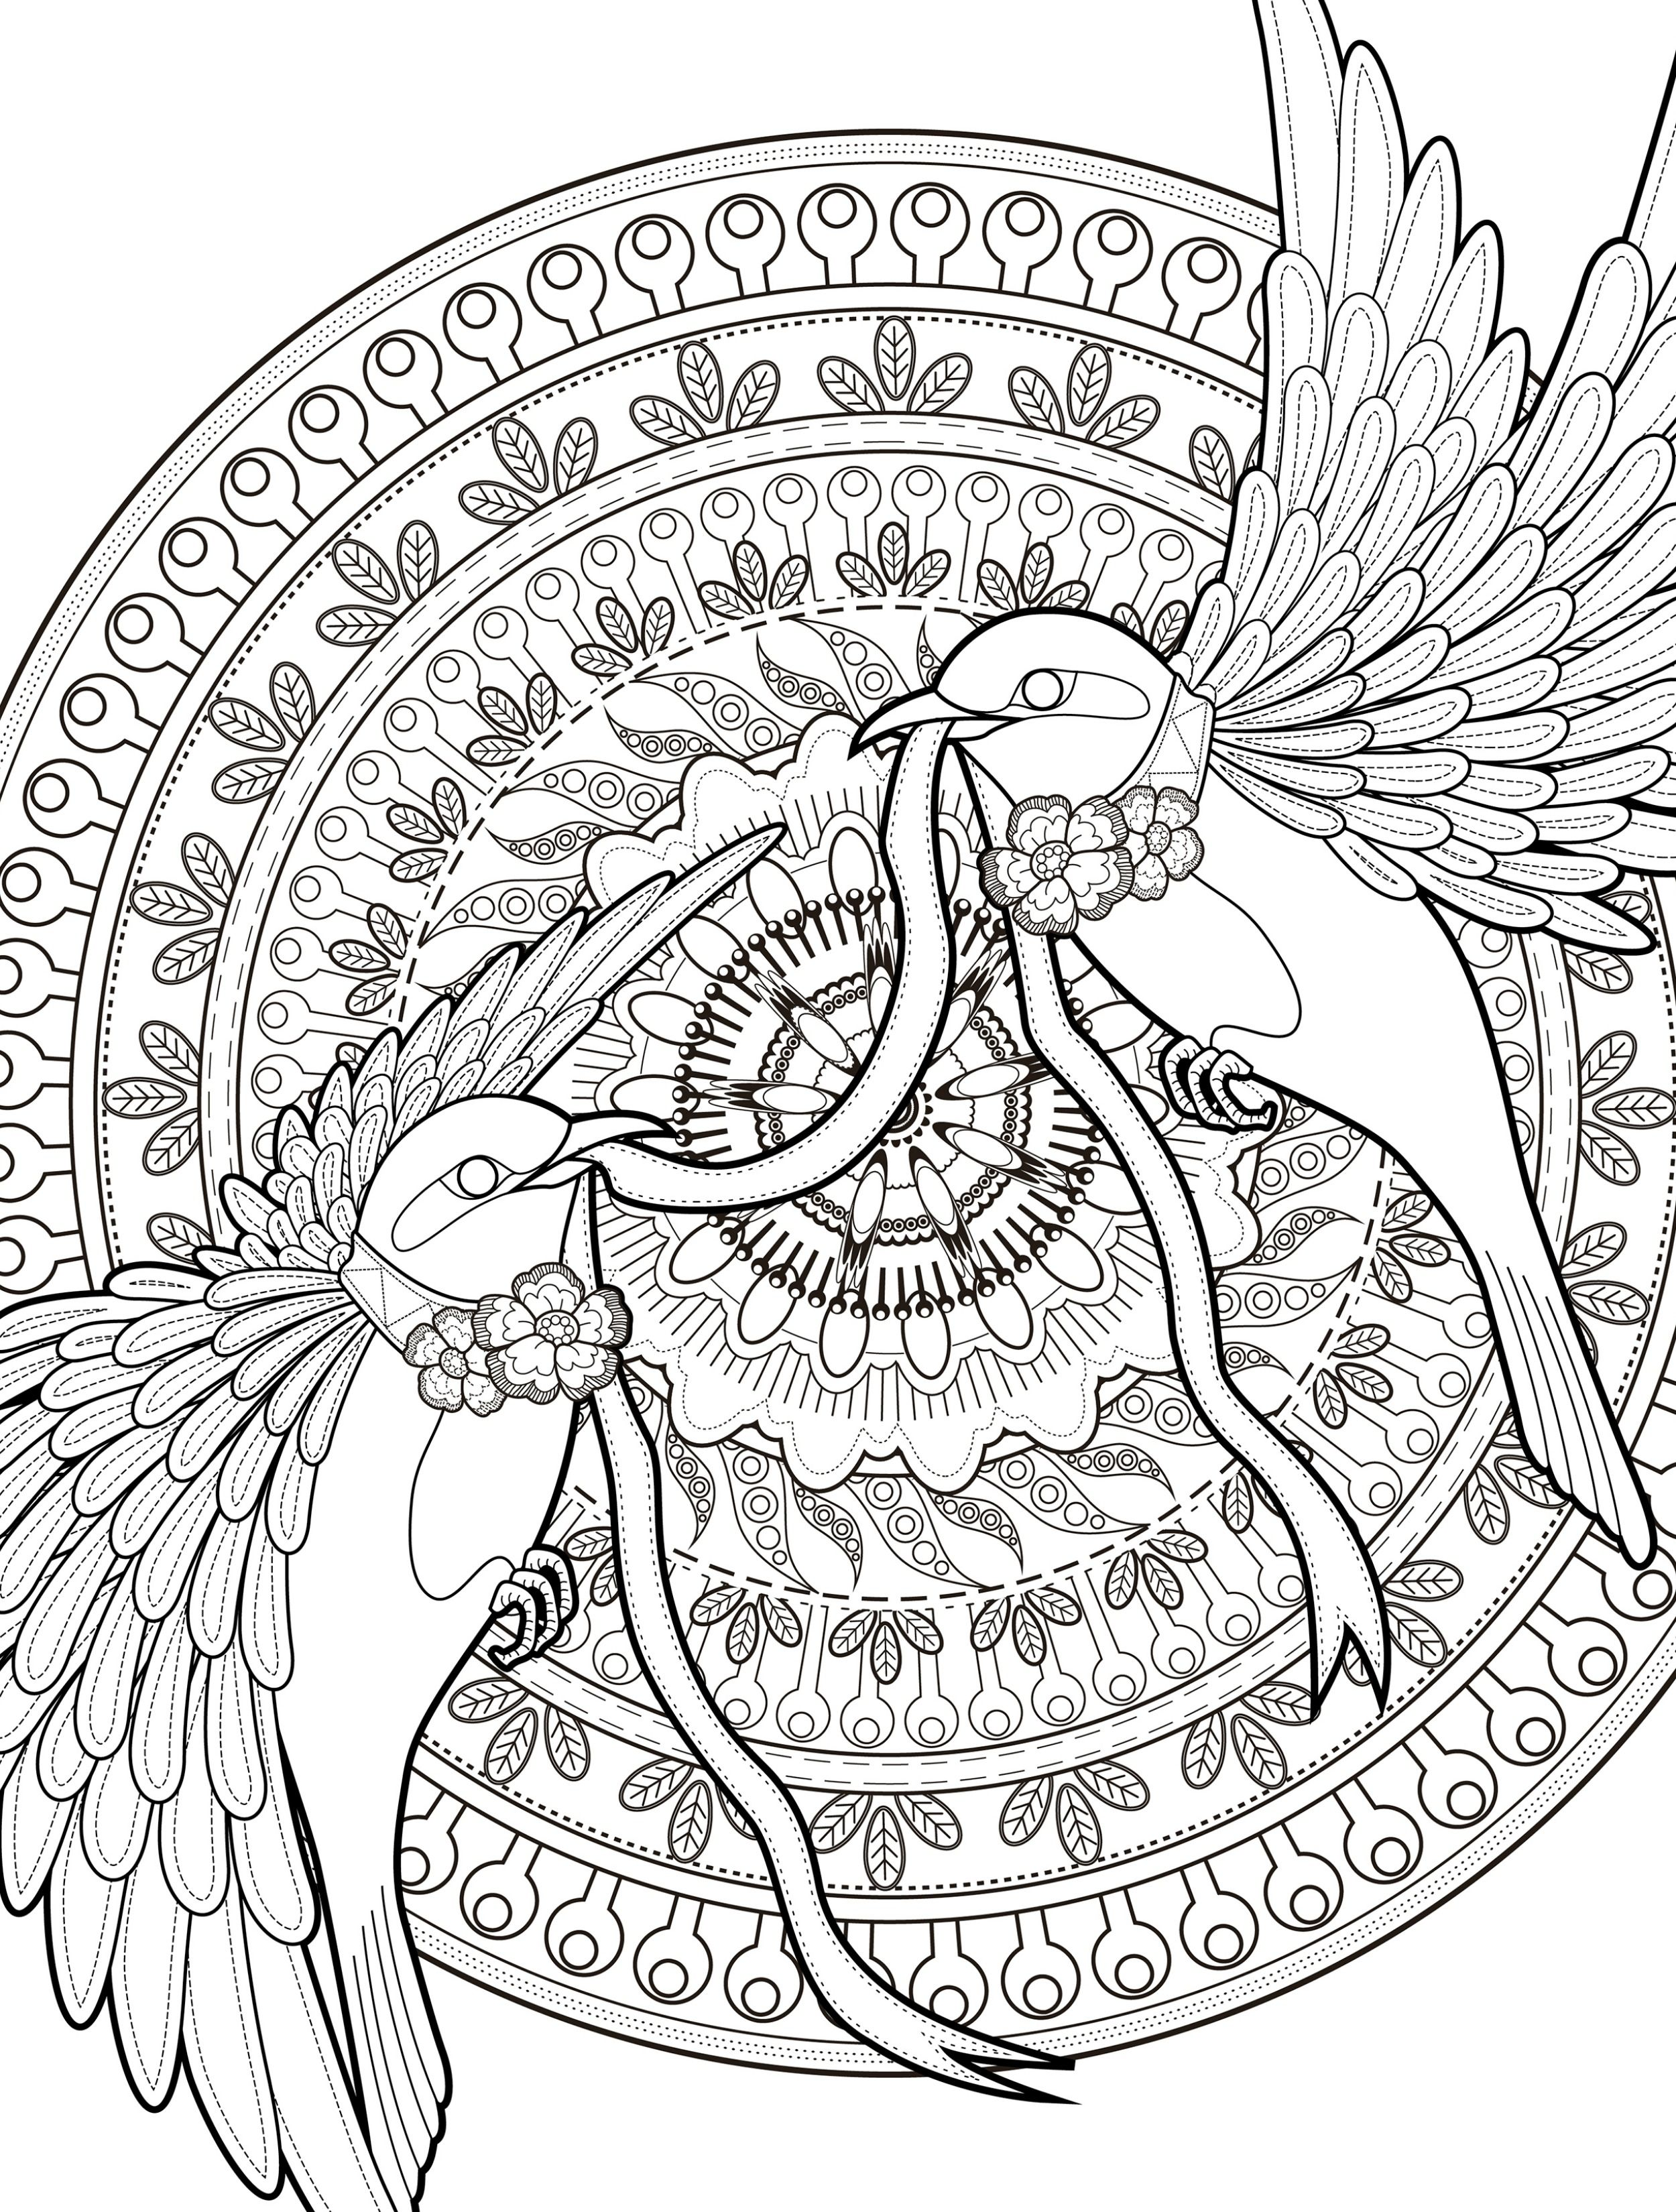 Adult coloring pages free printables mandala - 24 More Free Printable Adult Coloring Pages Page 24 Of 25